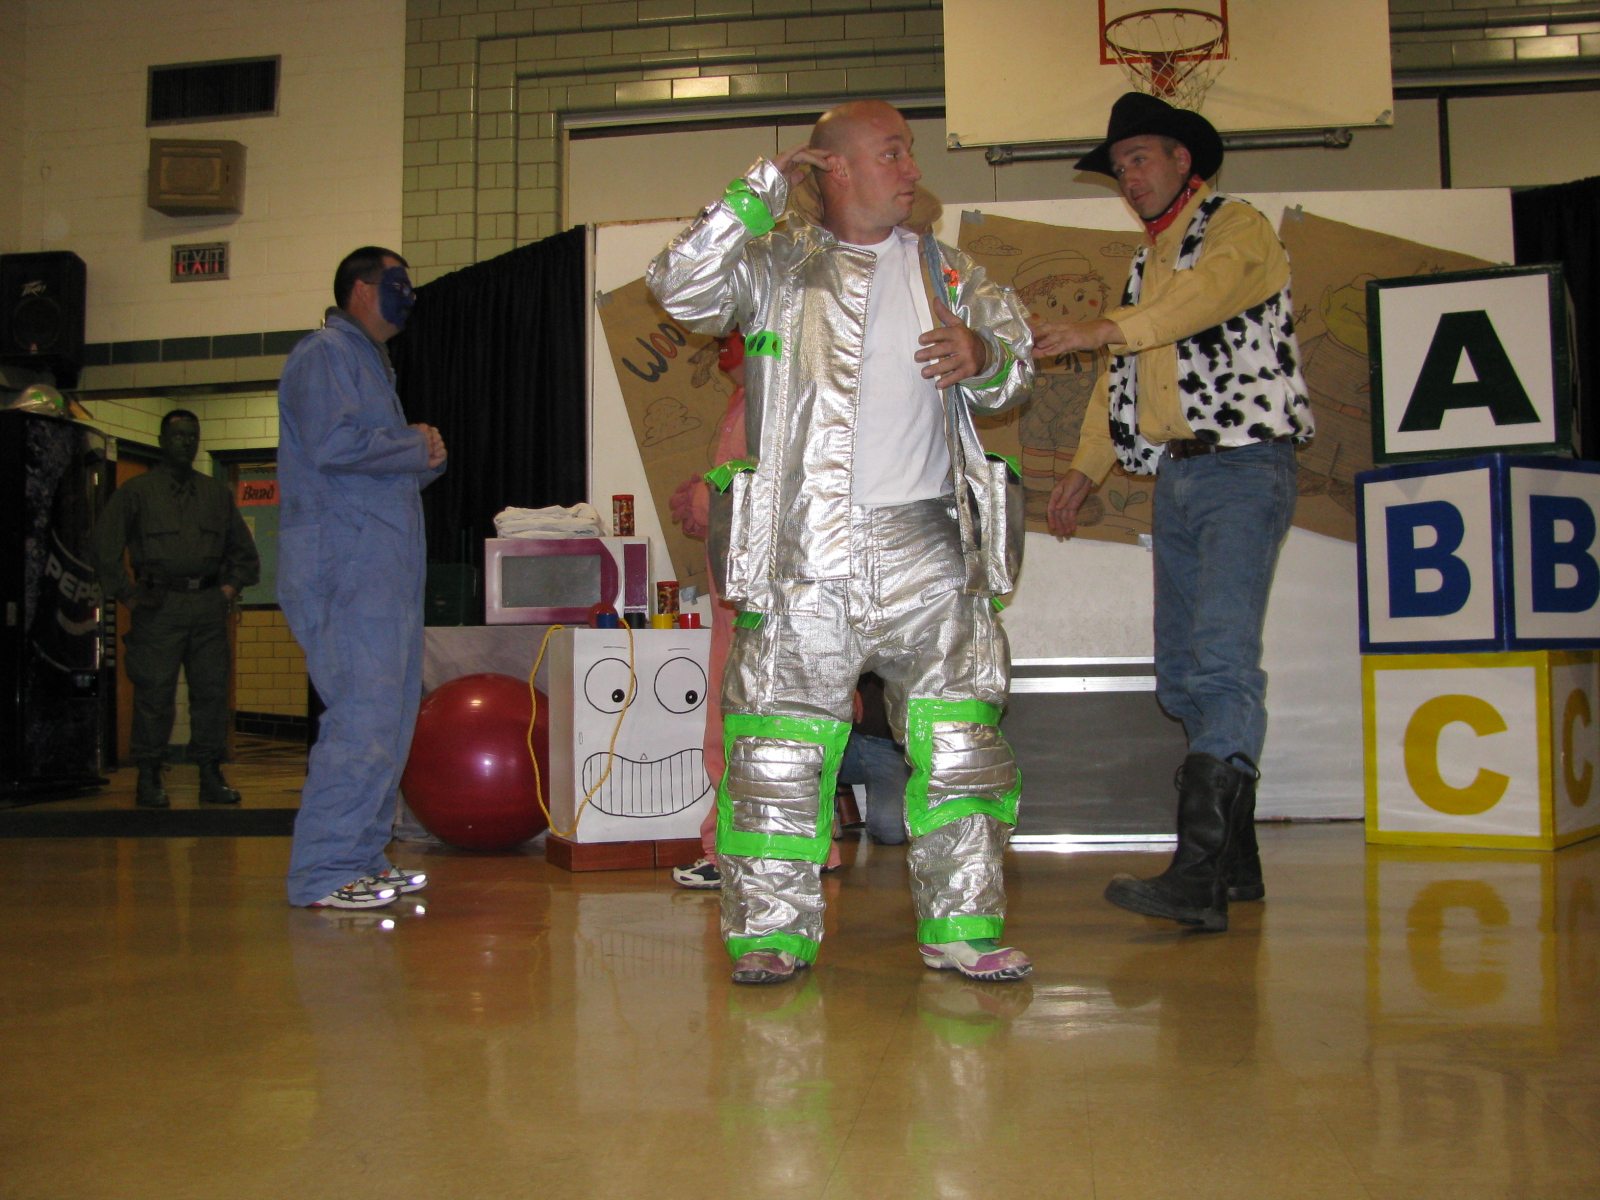 Man Dressed up in Space Suite